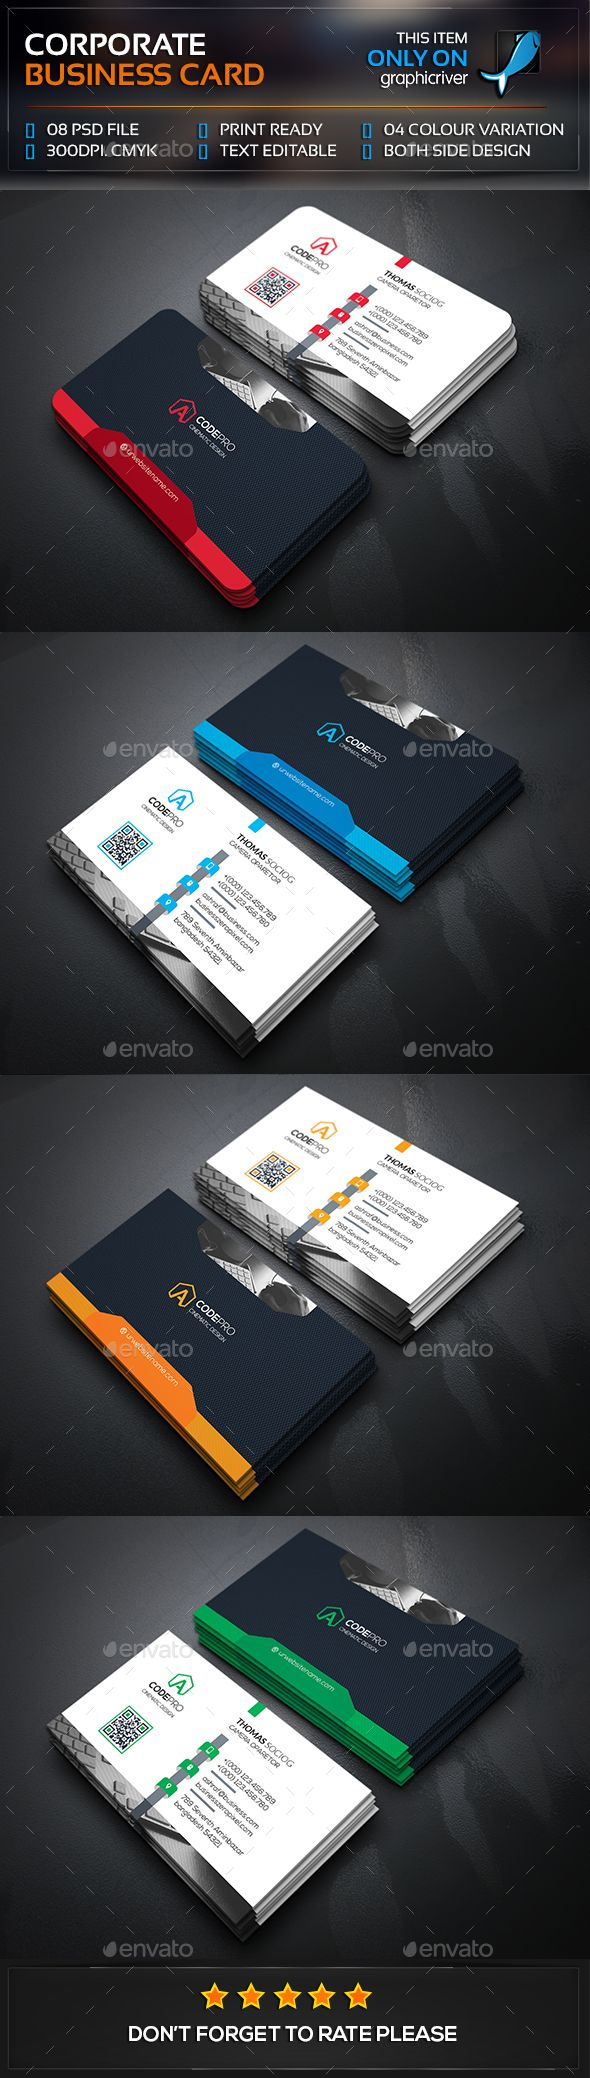 321 best Kartvizit images on Pinterest | Business card design ...